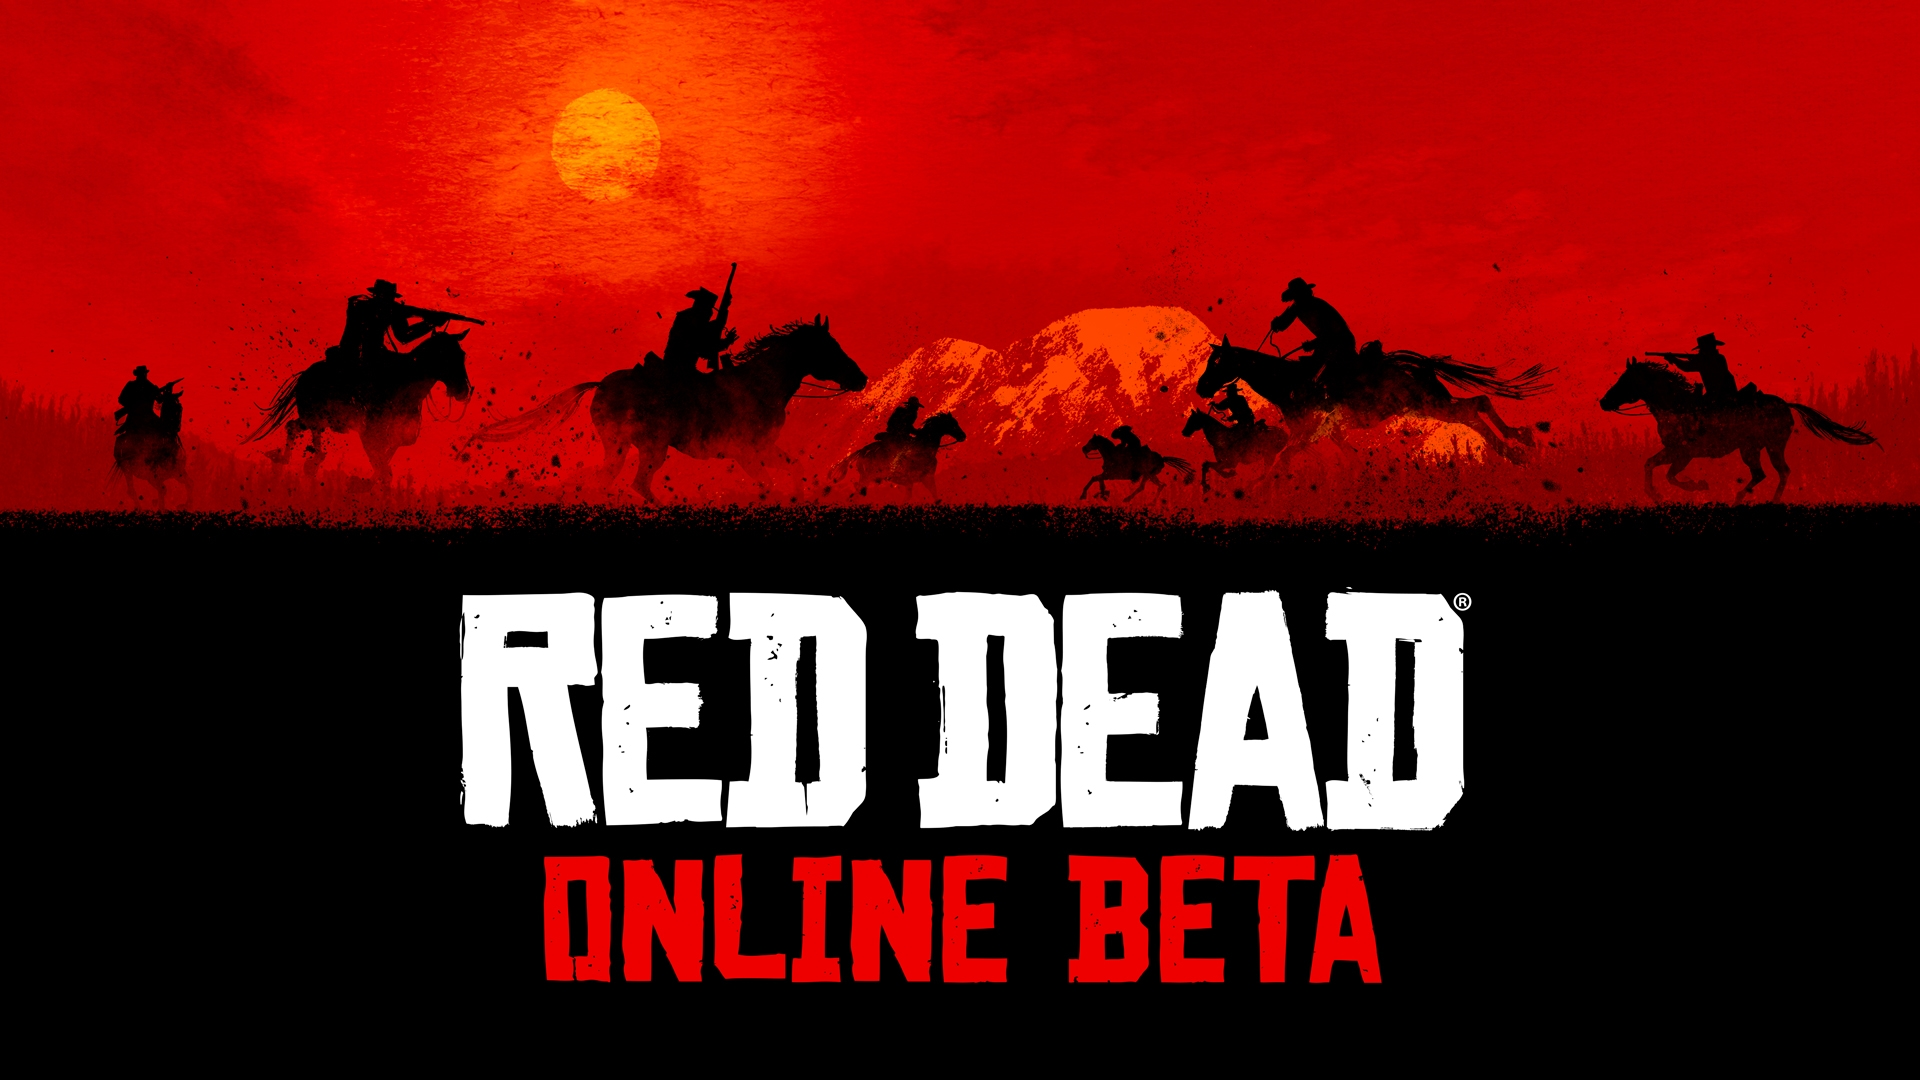 Red Dead Online Beta Now Available to All Players - Rockstar